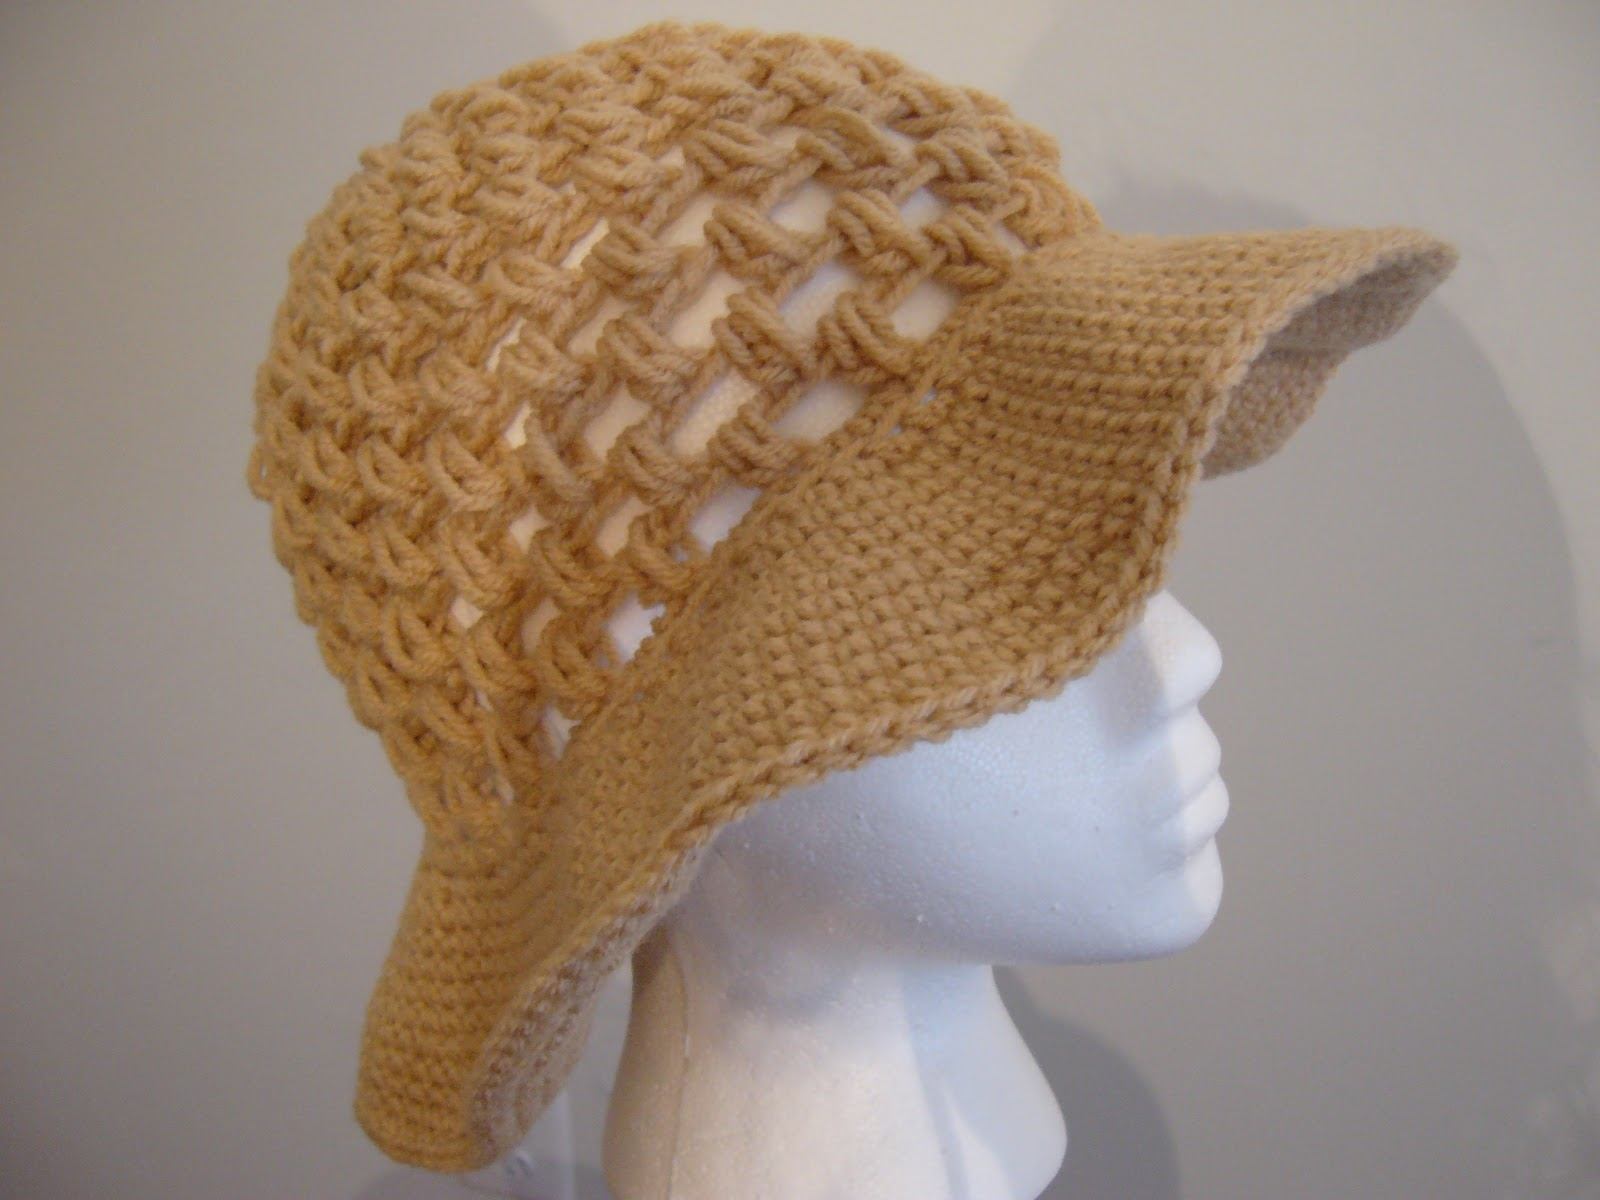 Crochet Indian Summer Hat - Knitting Patterns and Crochet Patterns